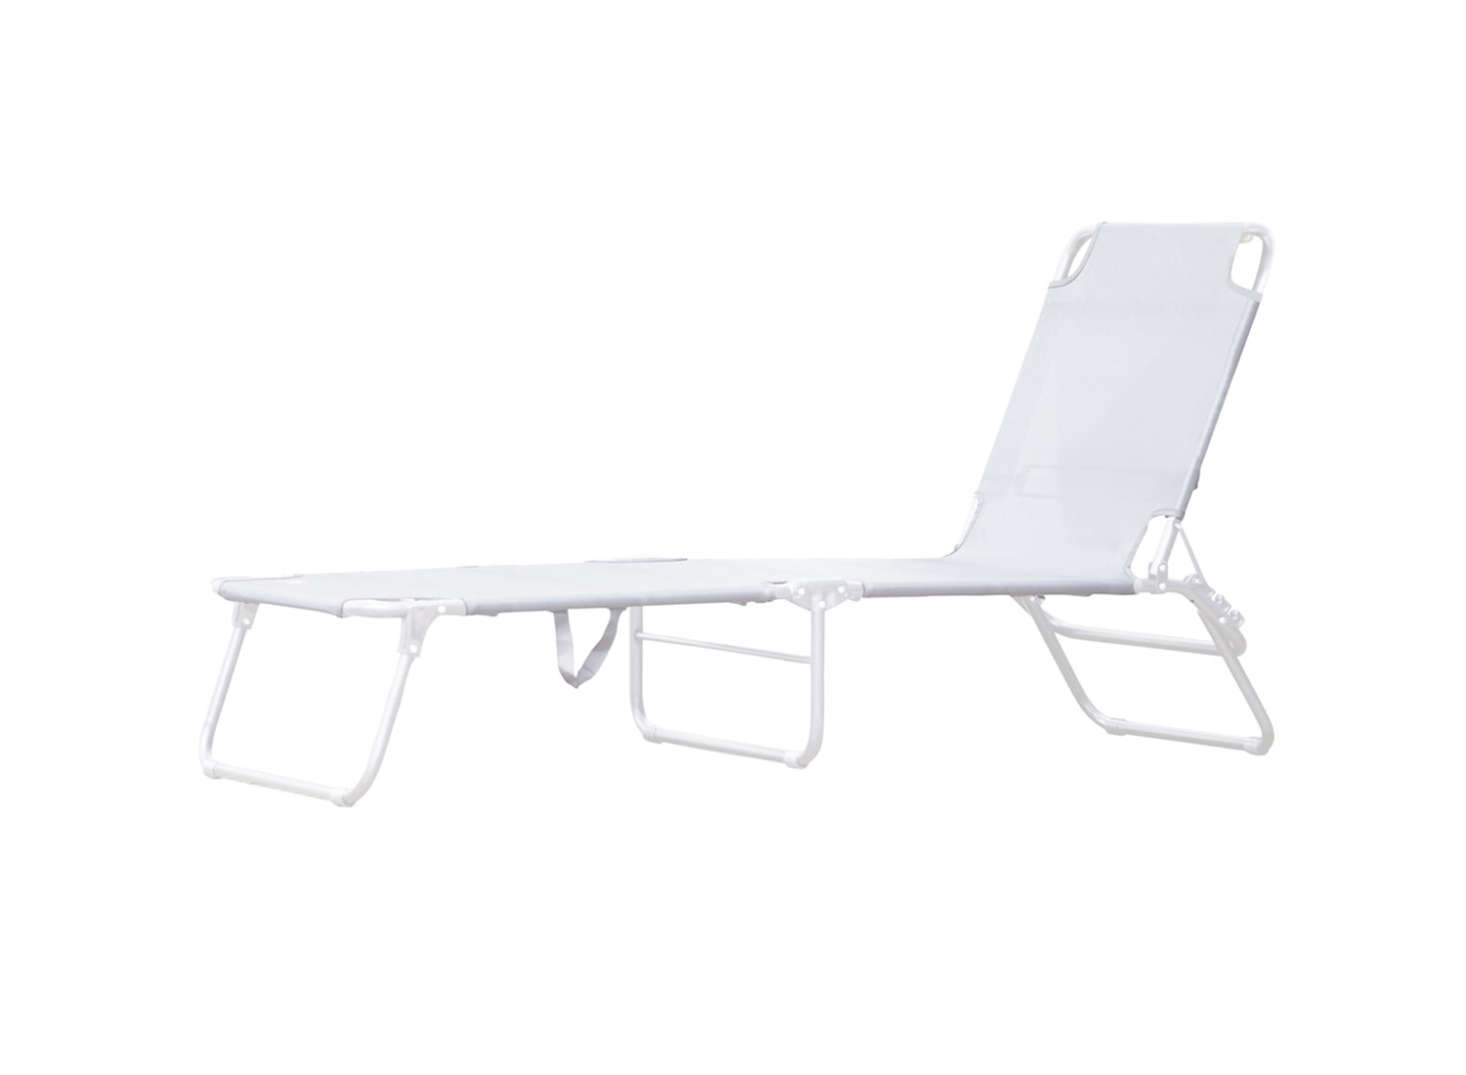 10 Easy Pieces Modern White Outdoor Chaise Lounges Gardenista